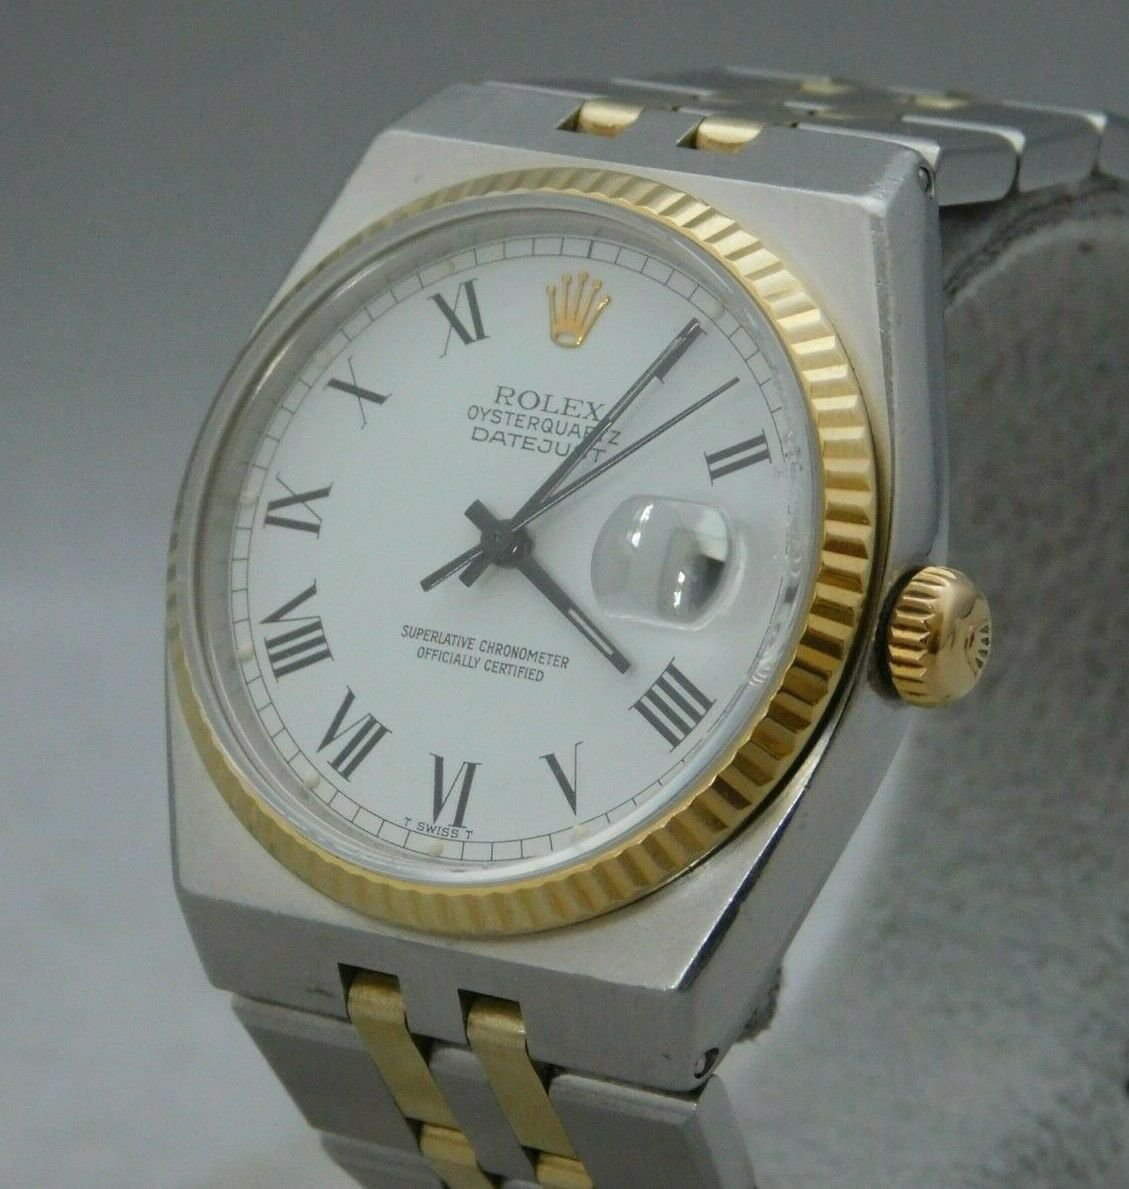 Rolex Oysterquartz Datejust 17013 18k Solid Gold & Stainless Steel Mens Watch